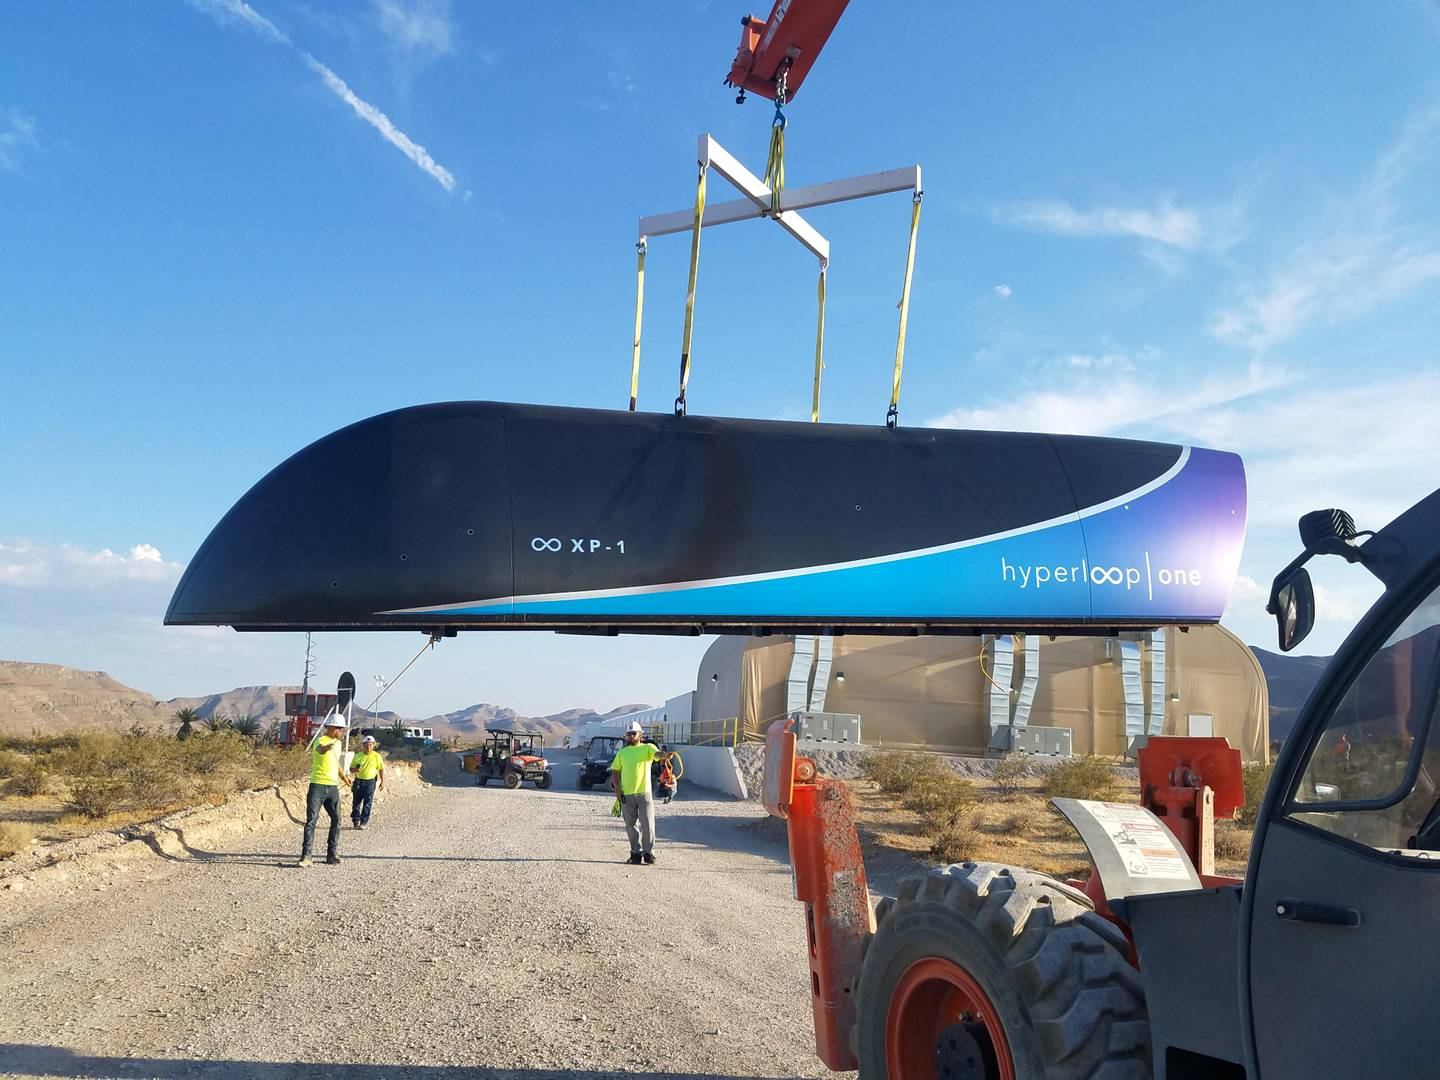 """This image released by Hyperloop One shows the first Prototype of Hyperloop One Pod on July 12, 2017. US startup Hyperloop One announced the first successful full-systems test of its near-supersonic rail transit system.  / AFP PHOTO / Weber Shandwick PR / HO / RESTRICTED TO EDITORIAL USE - MANDATORY CREDIT """"AFP PHOTO / Weber Shandwick PR"""" - NO MARKETING NO ADVERTISING CAMPAIGNS - DISTRIBUTED AS A SERVICE TO CLIENTS"""